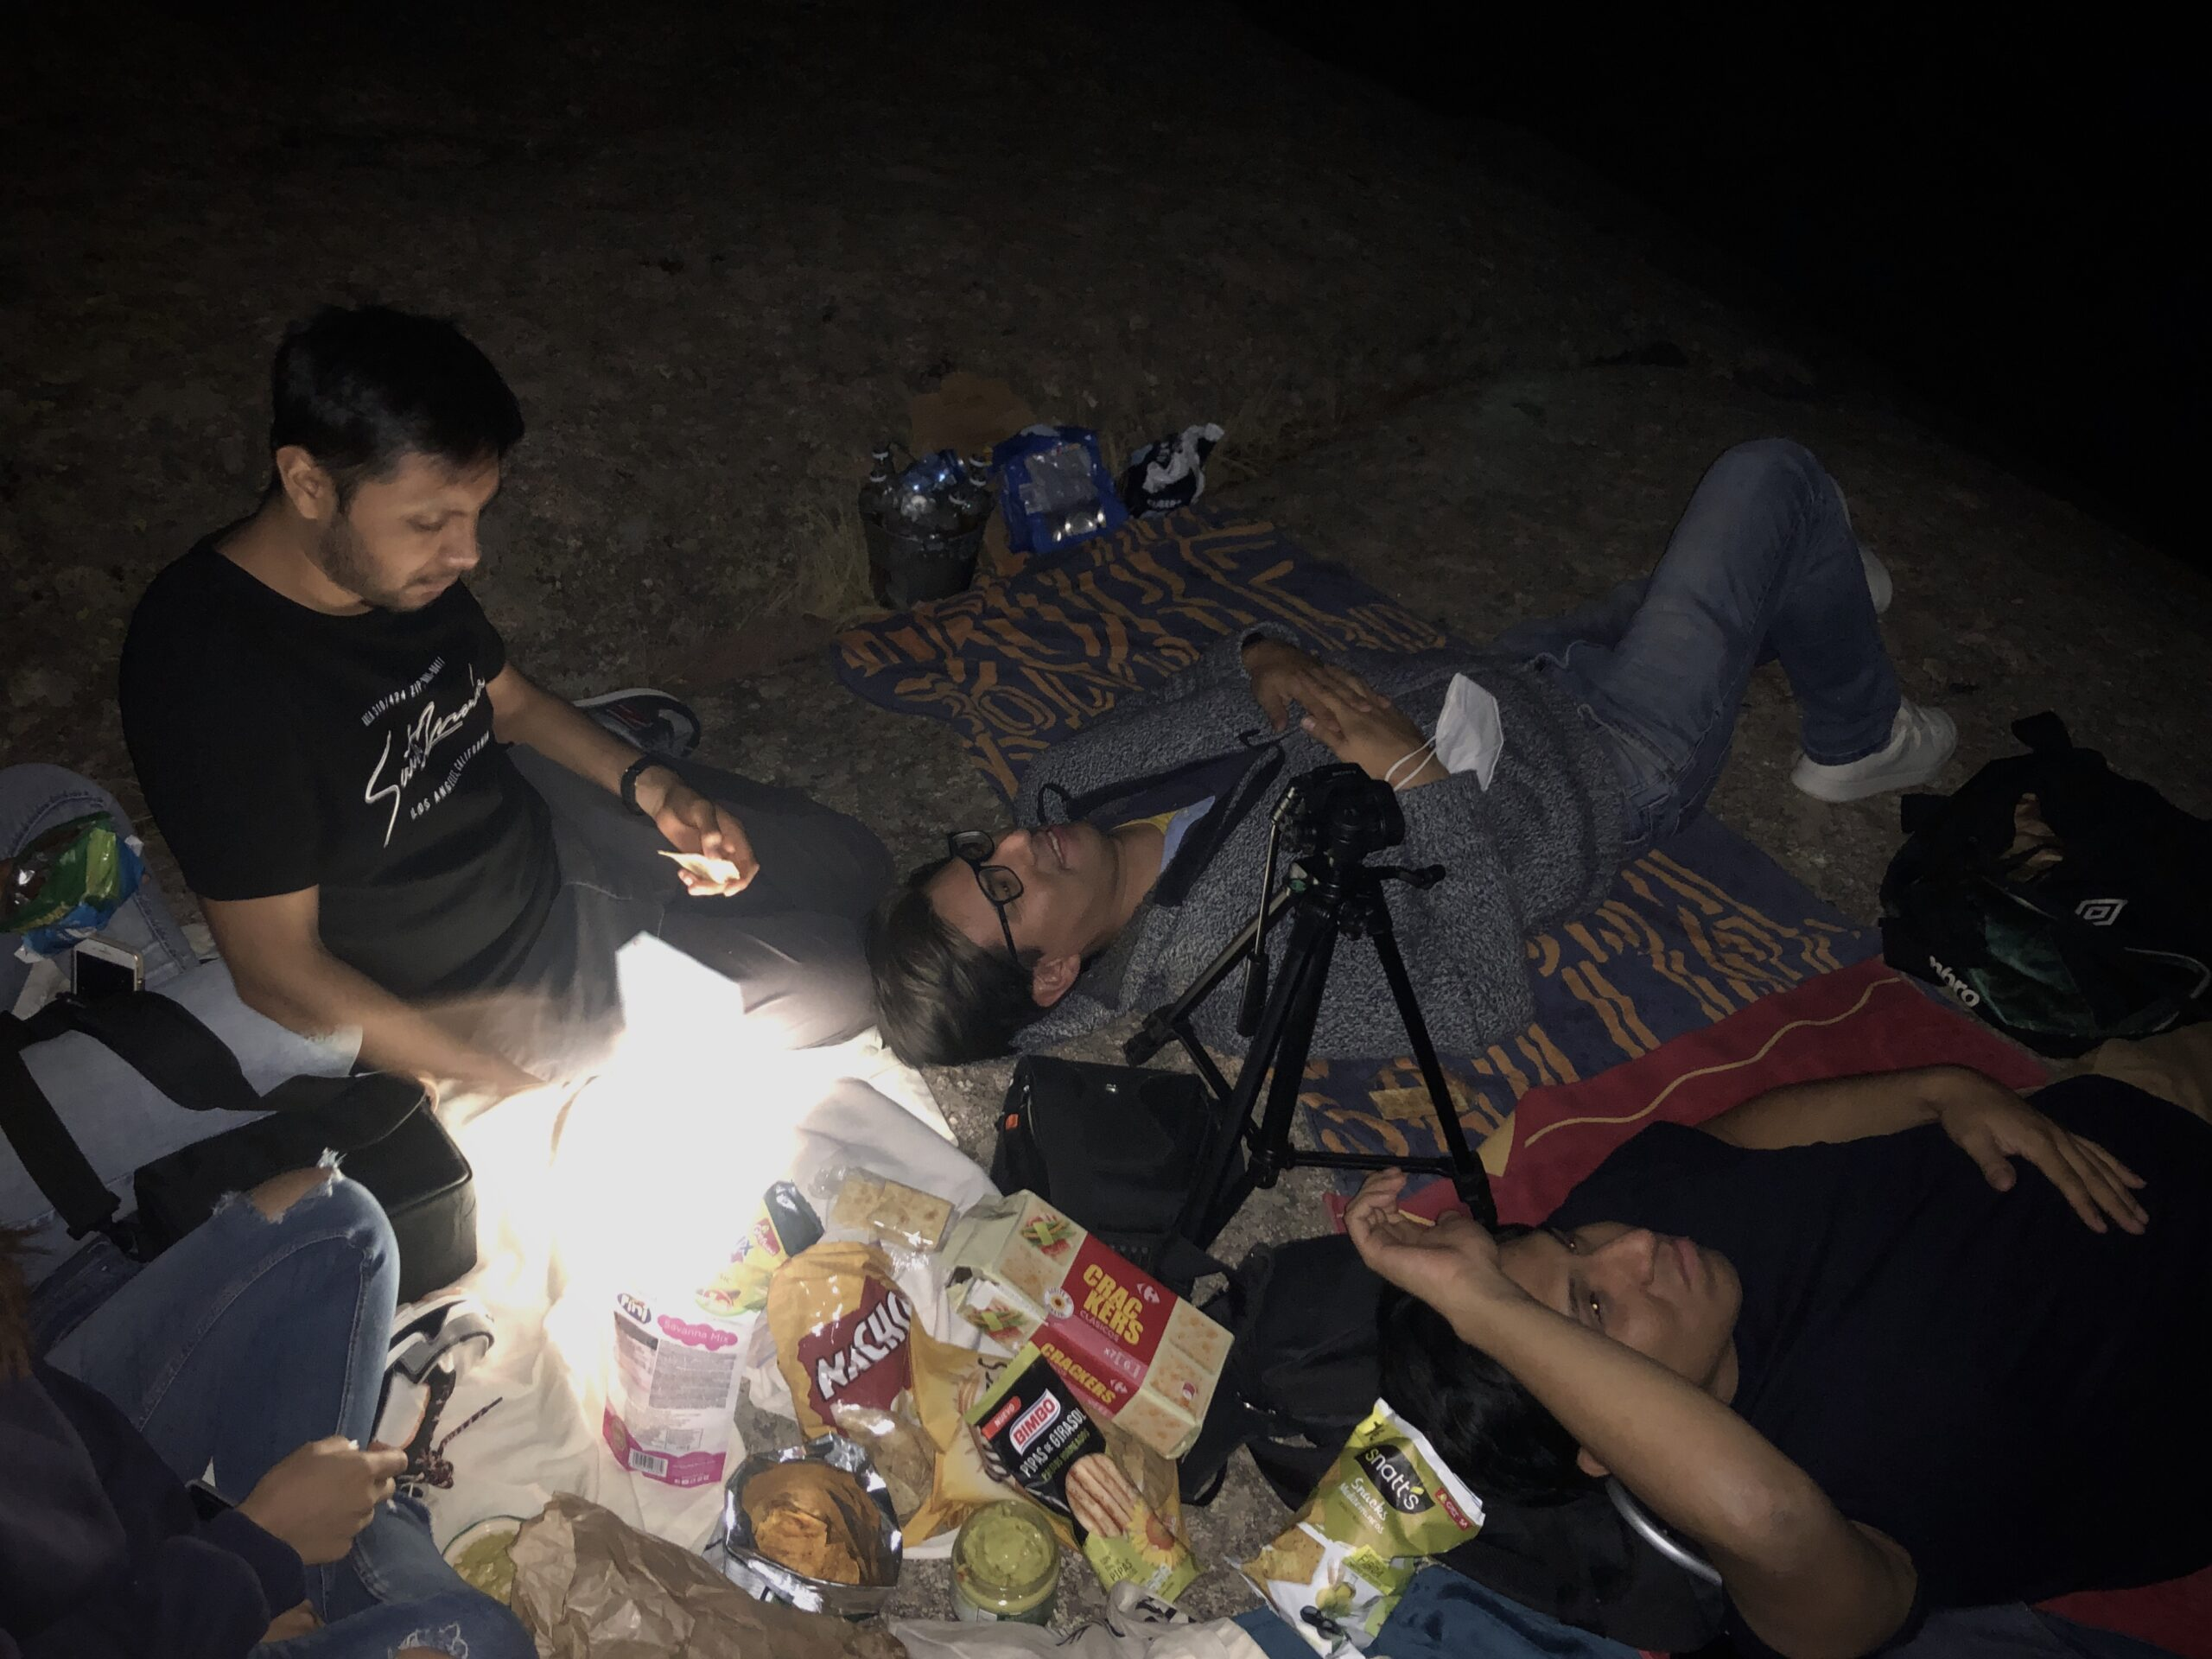 A group of friends lying on a rock in the dark.